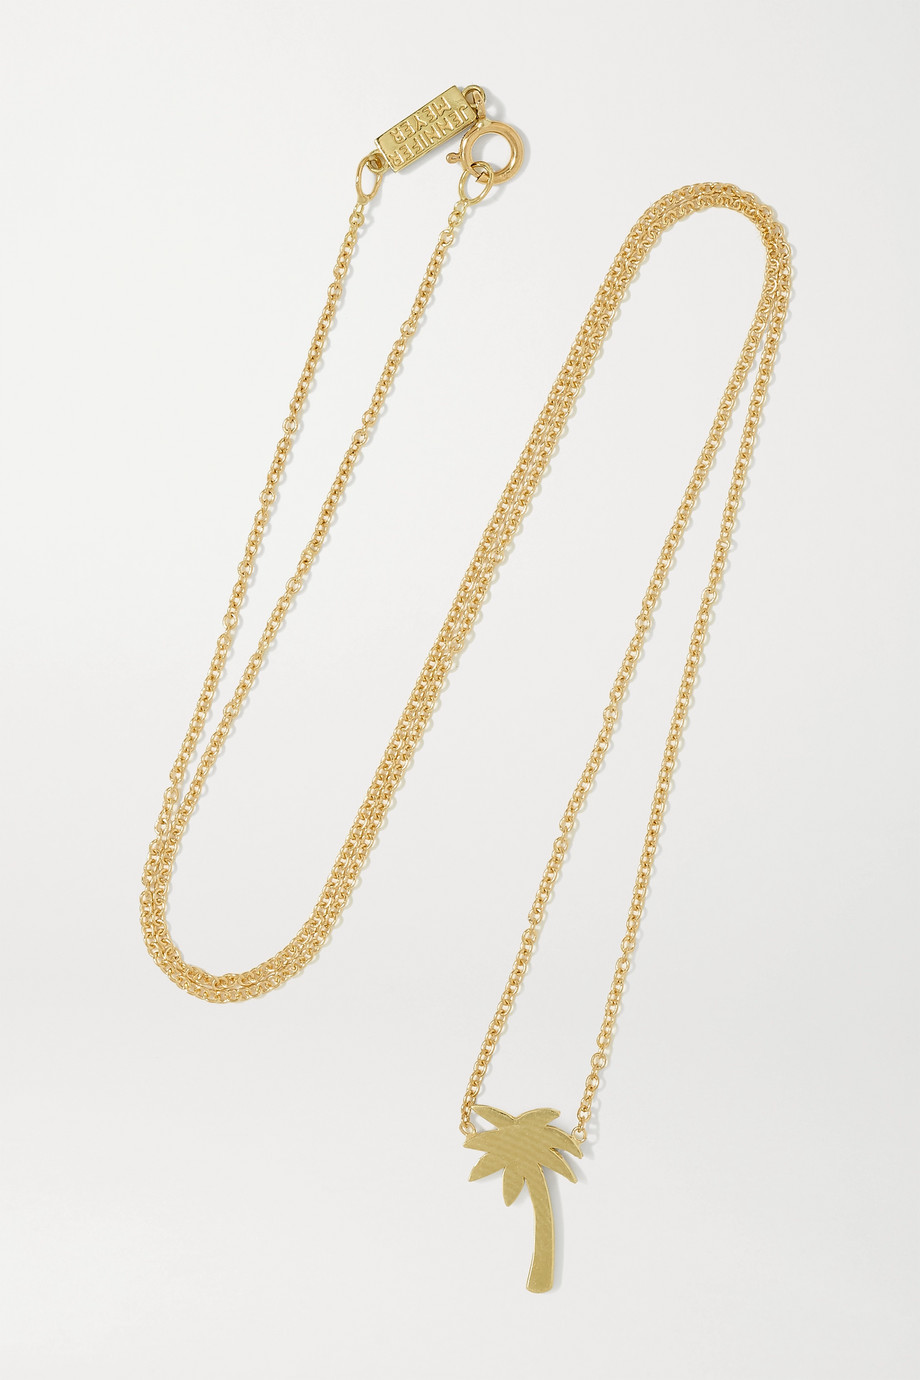 JENNIFER MEYER Mini Palm Tree 18-karat gold necklace